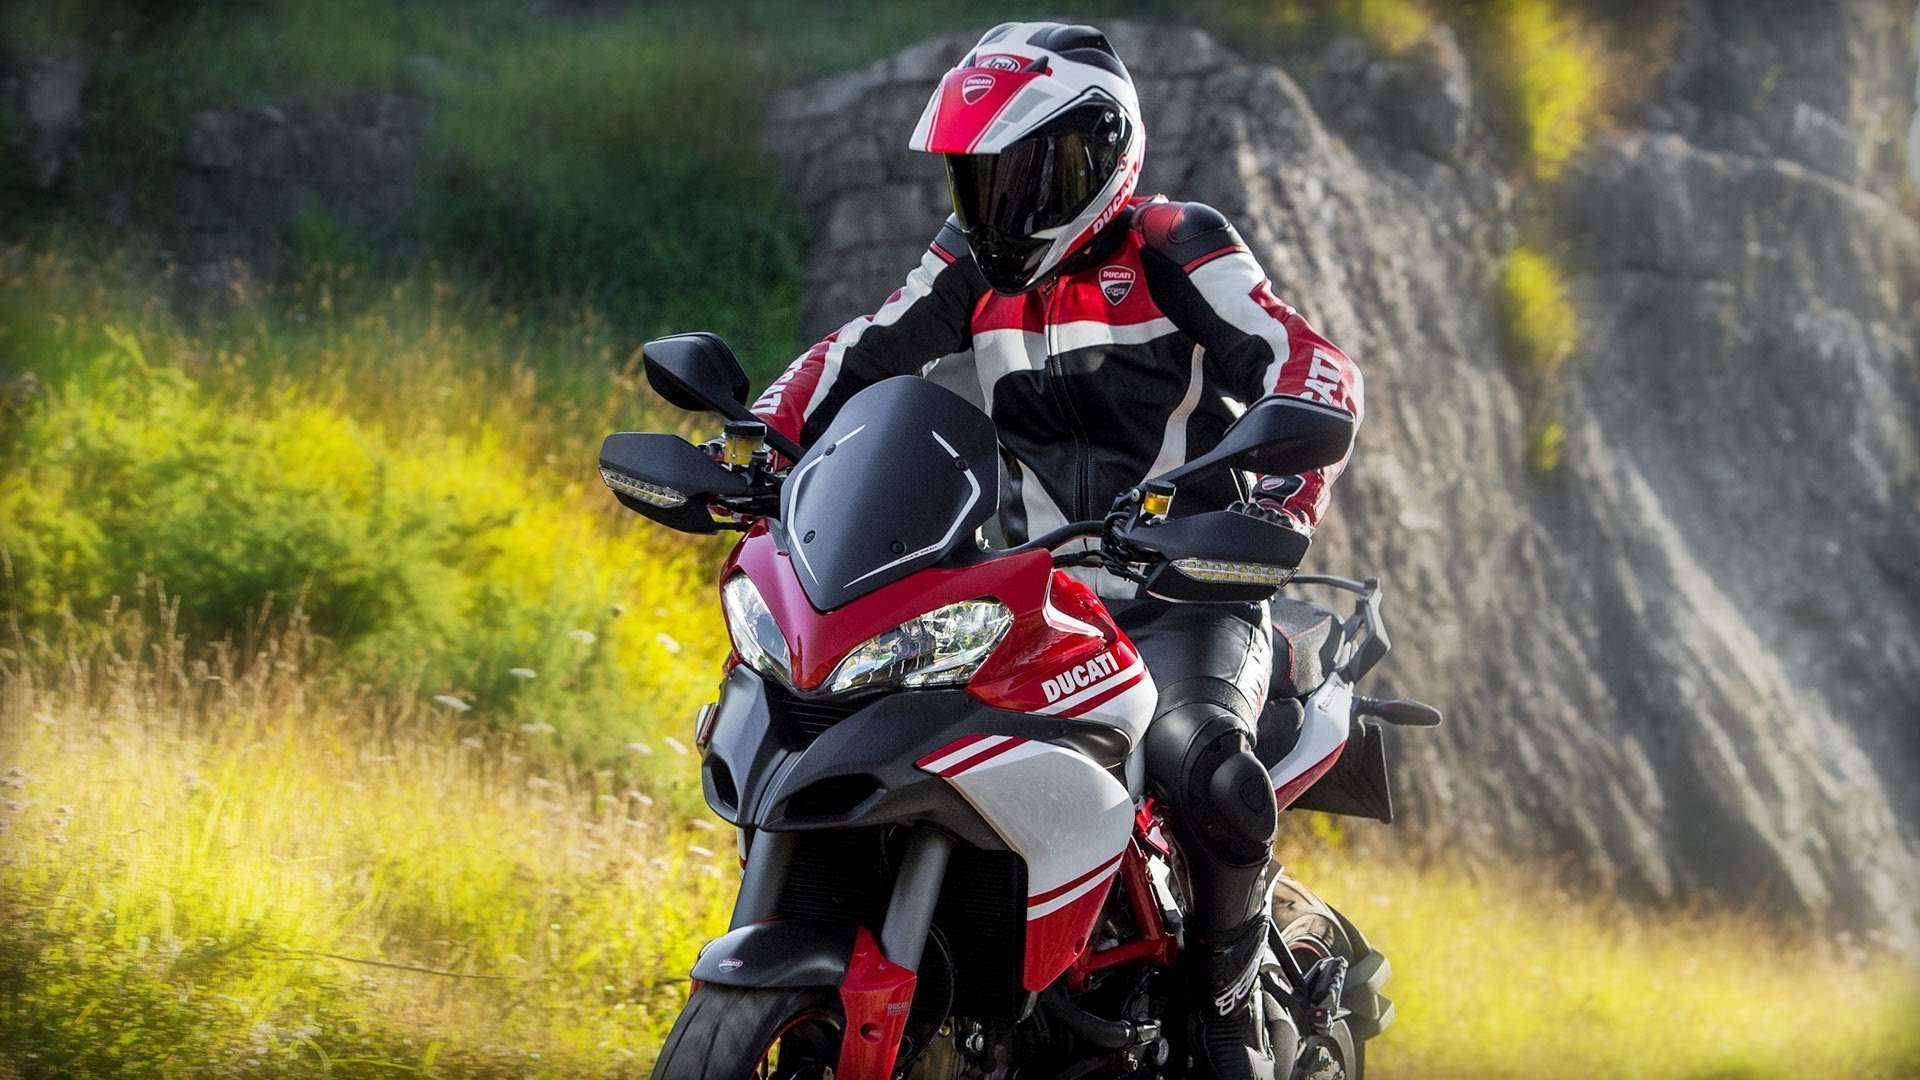 Ducati Multistrada 1200 S Pikes Peak Edition 2014 wallpapers #13080